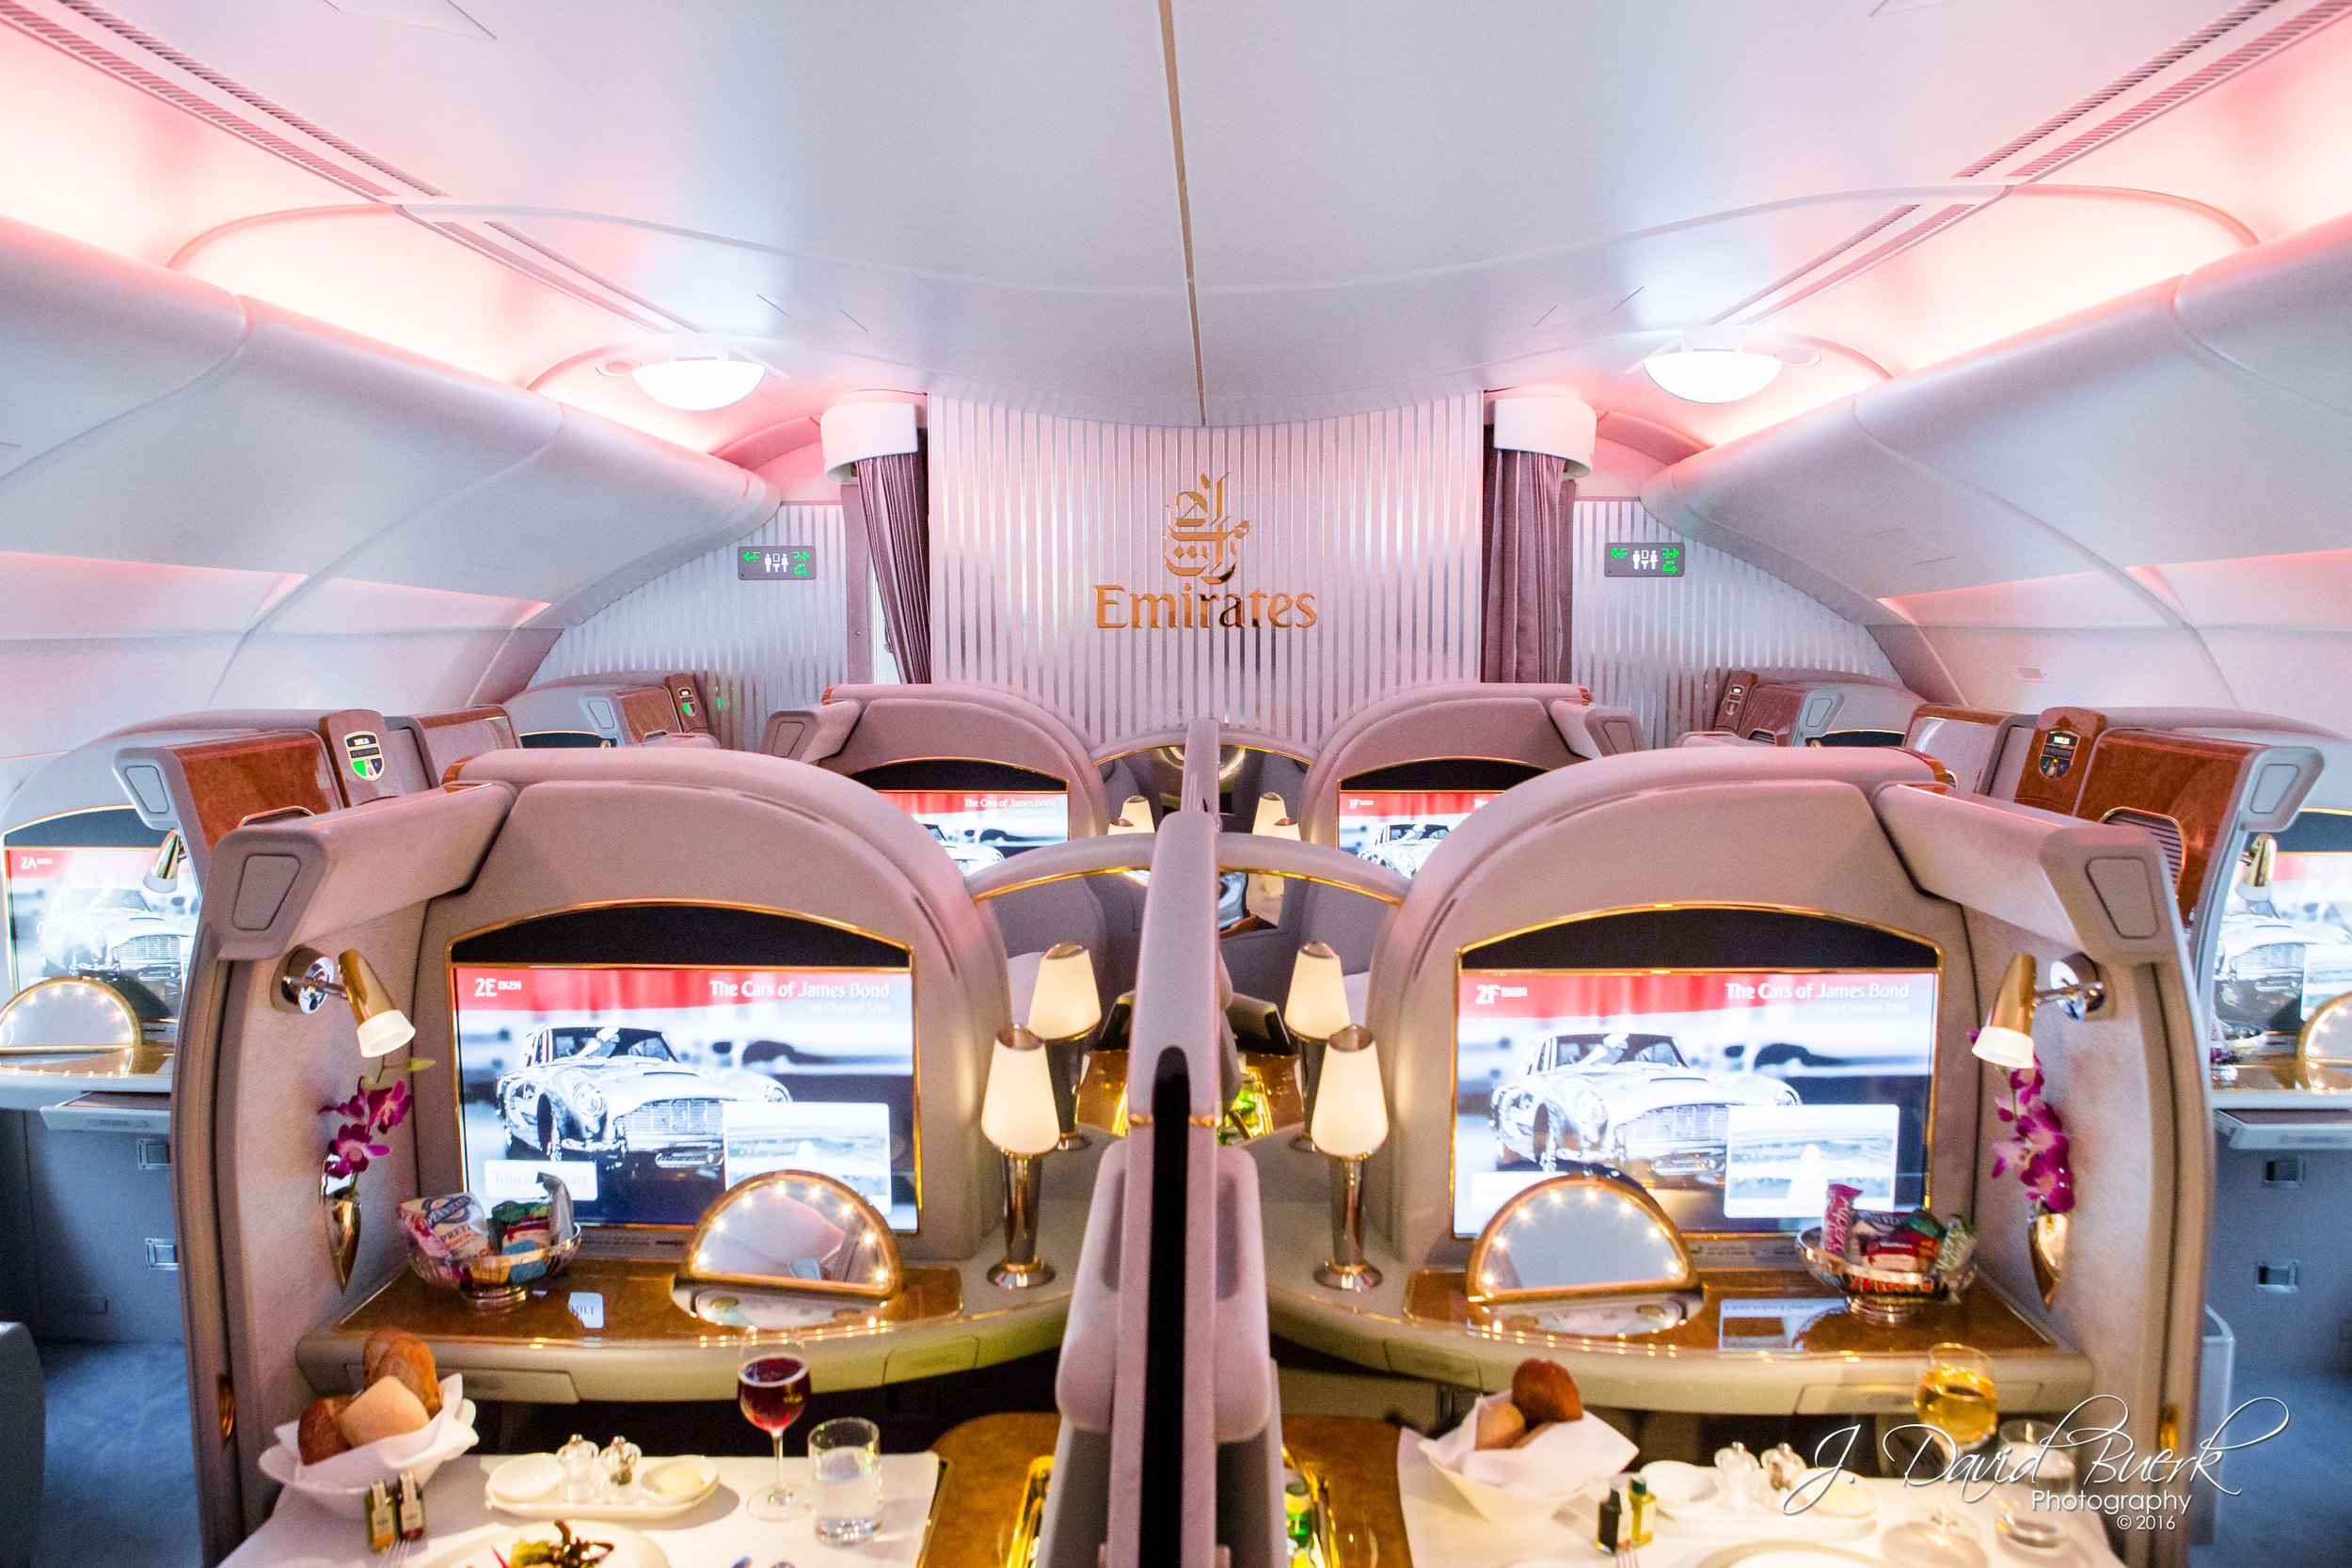 The First Class cabin aboard Emirates' new A380, which began inaugural service between Washington, DC and Dubai on February 23rd, 2016.